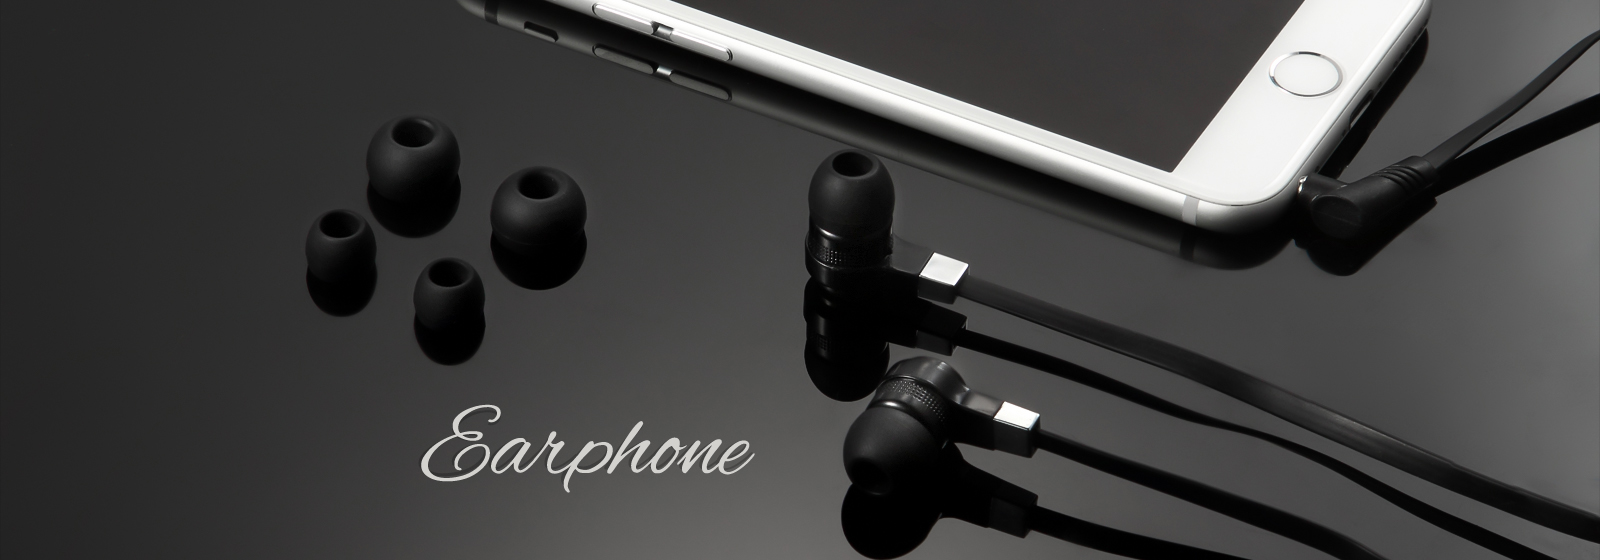 Earphone_Banner